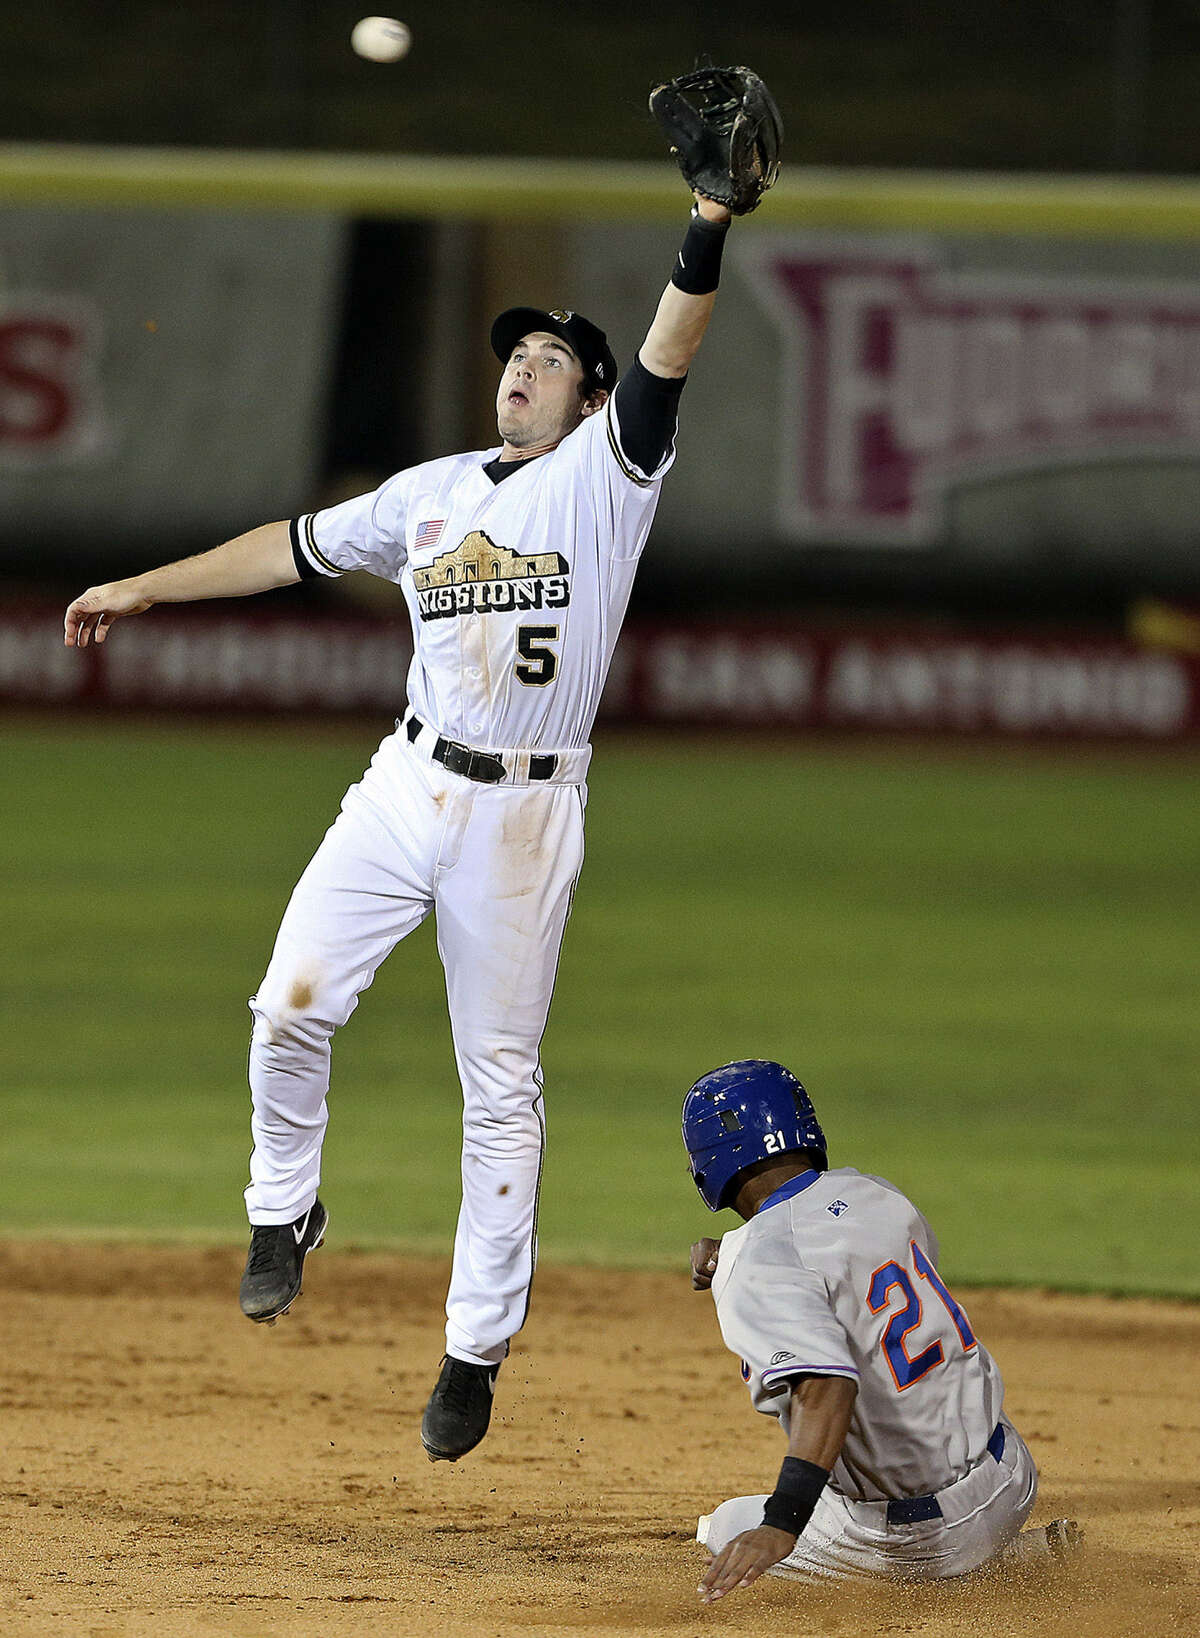 Missions shortstop Chris Bisson leaps to catch a high throw from the catcher as Midland's D'Arby Myers steals second base in the sixth inning.